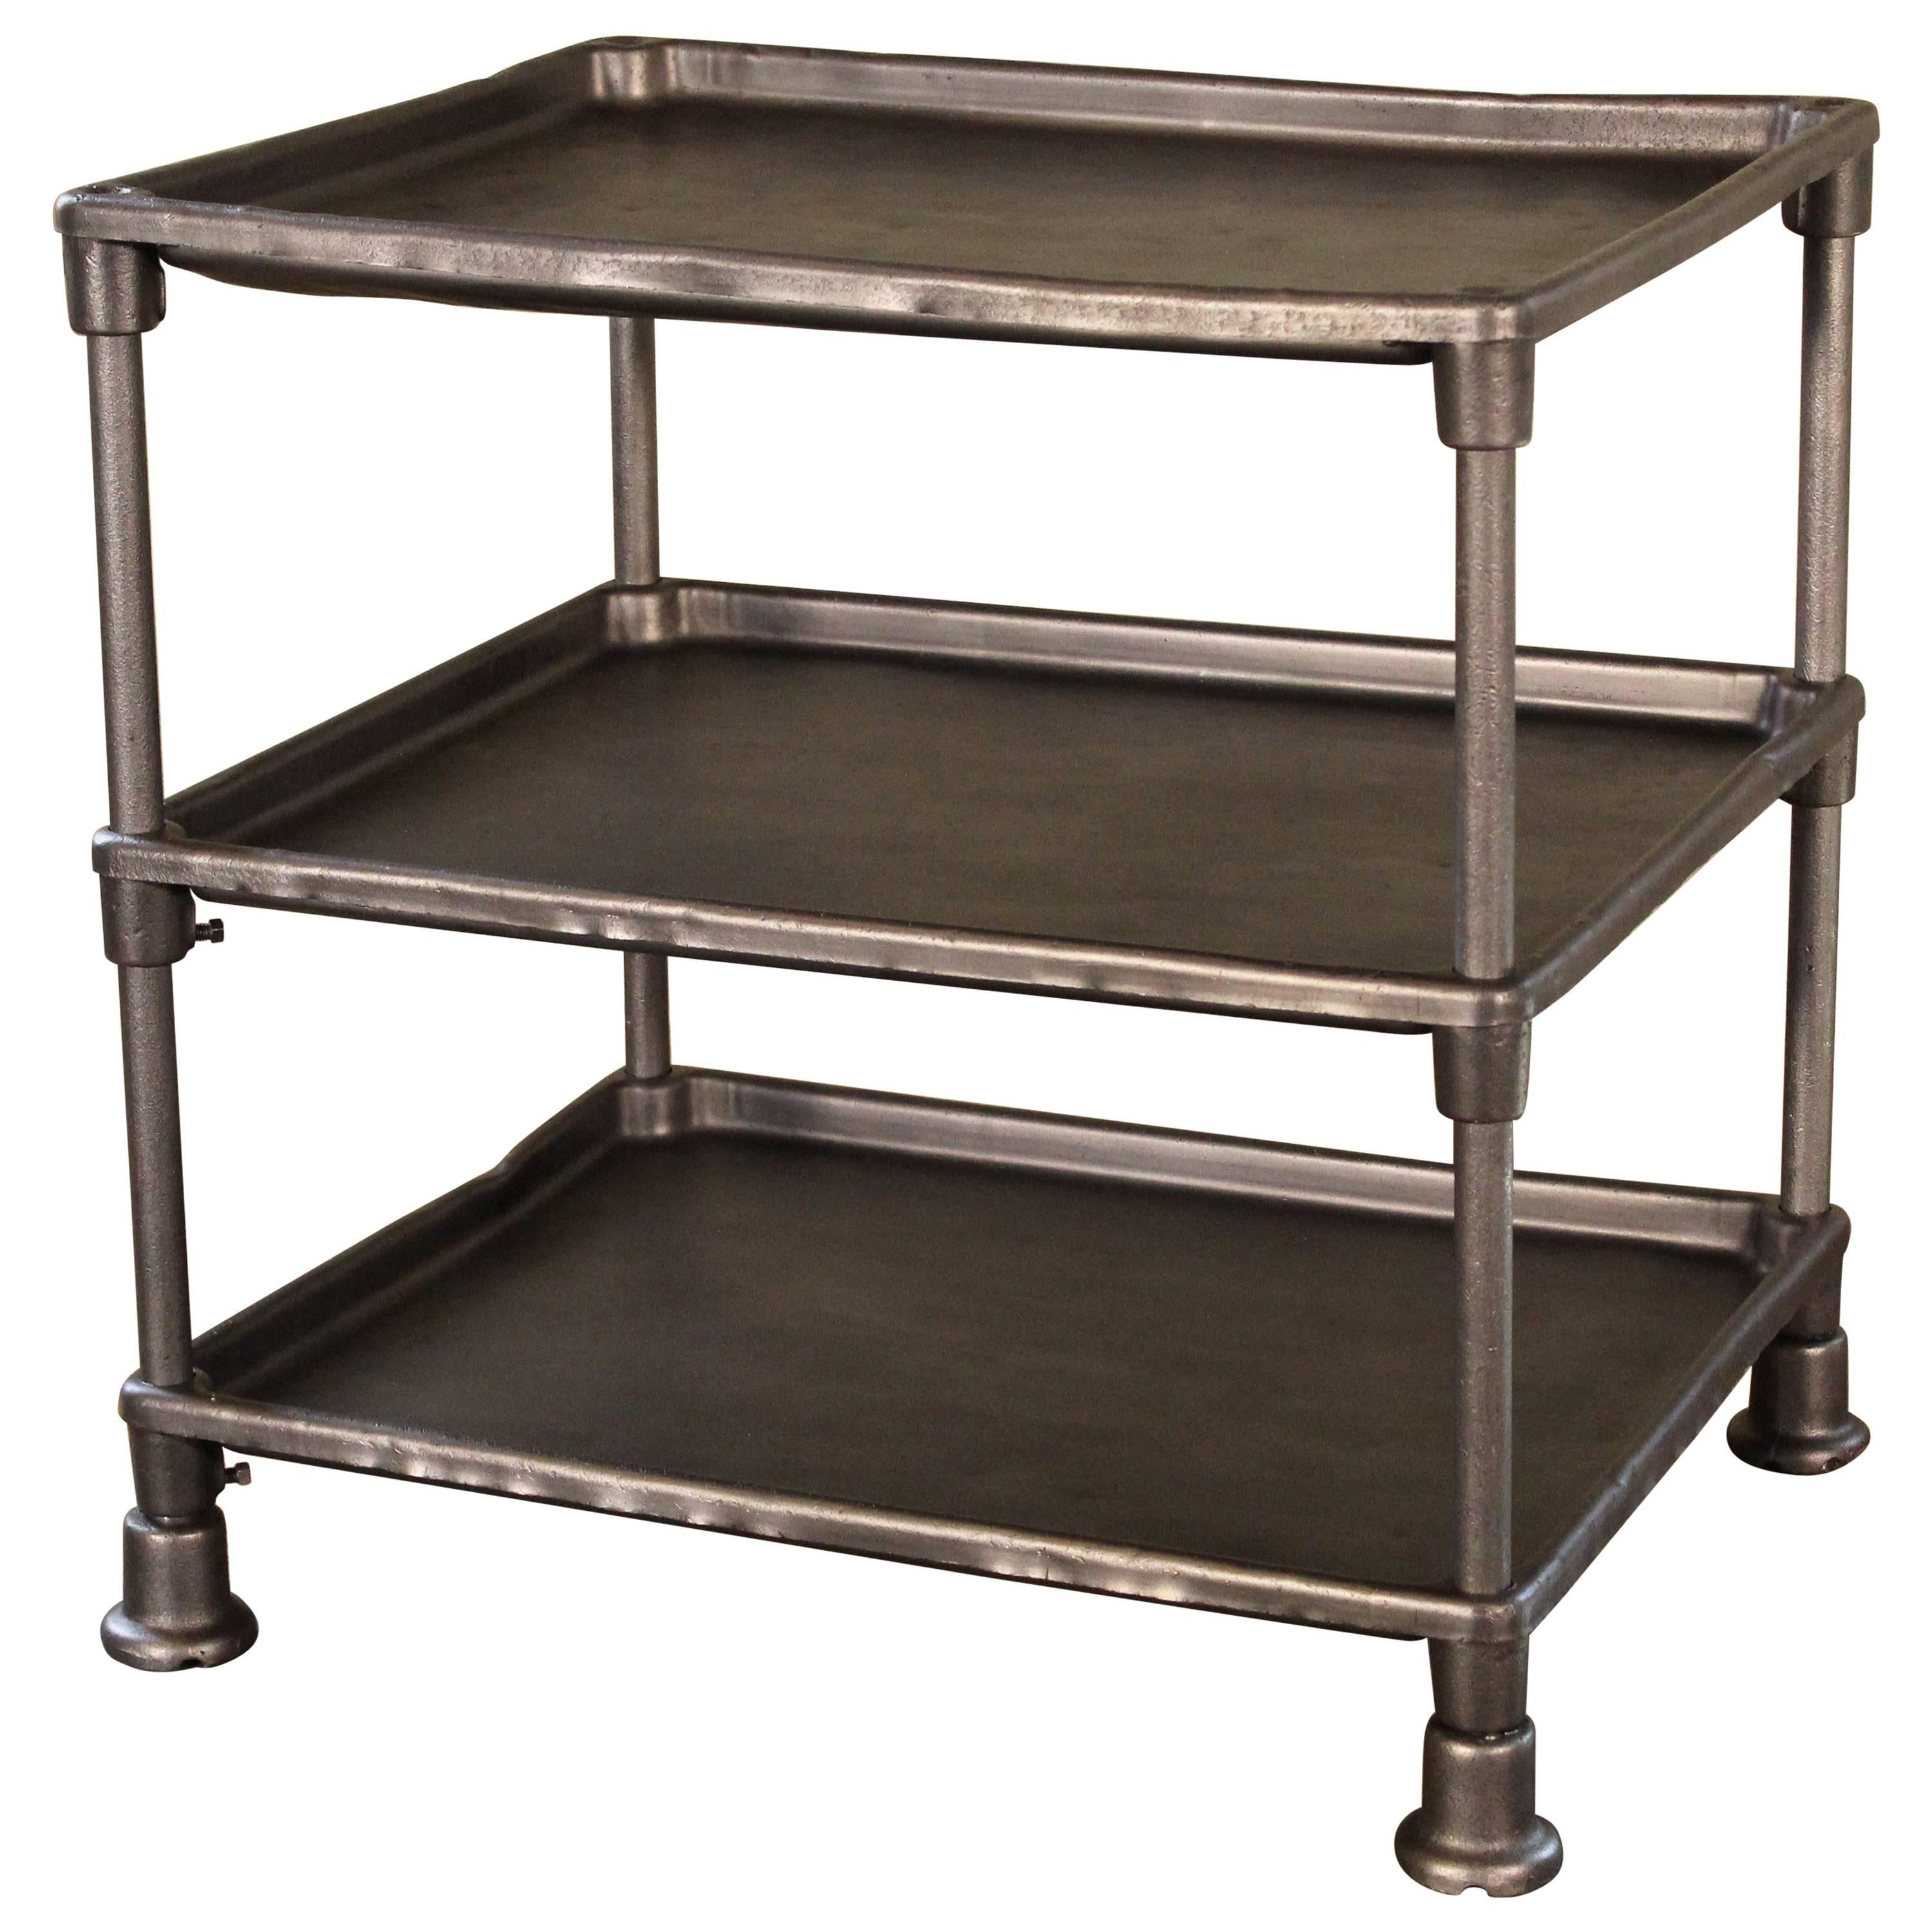 Authentic Industrial Adjustable Three Tier Table, Cast Iron And Steel